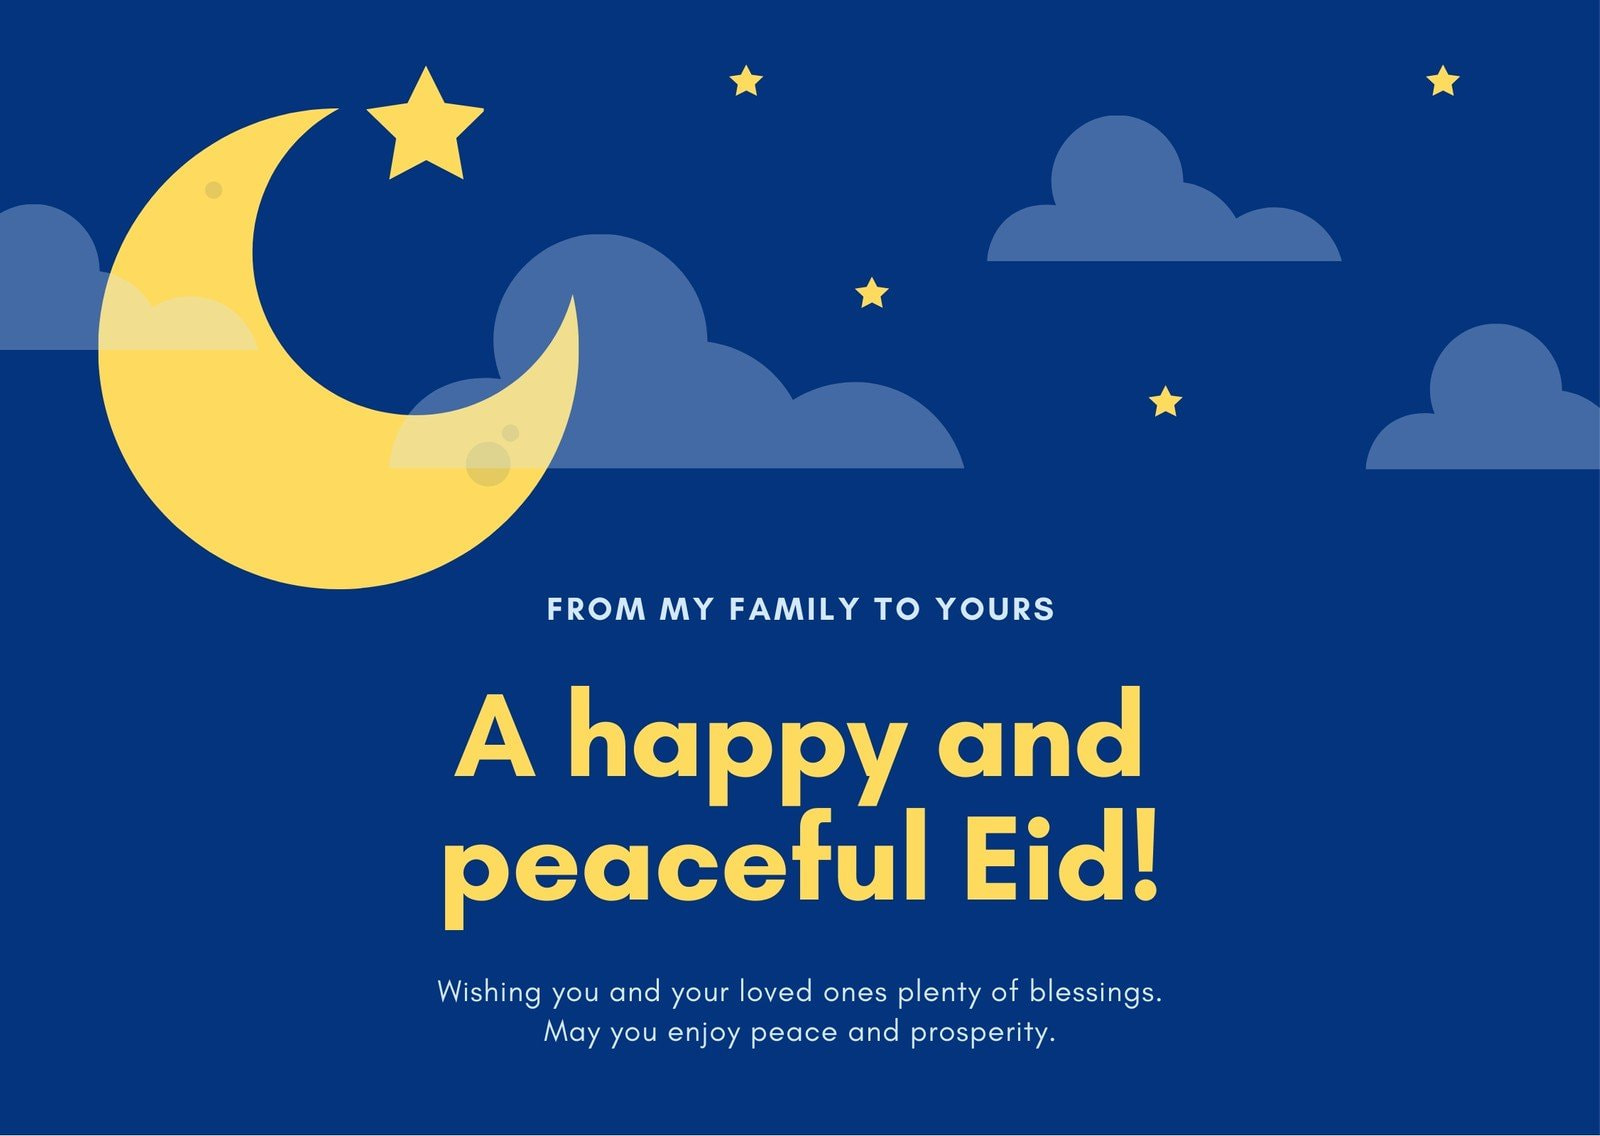 Blue and Yellow Moon and Stars Eid al-Fitr Card